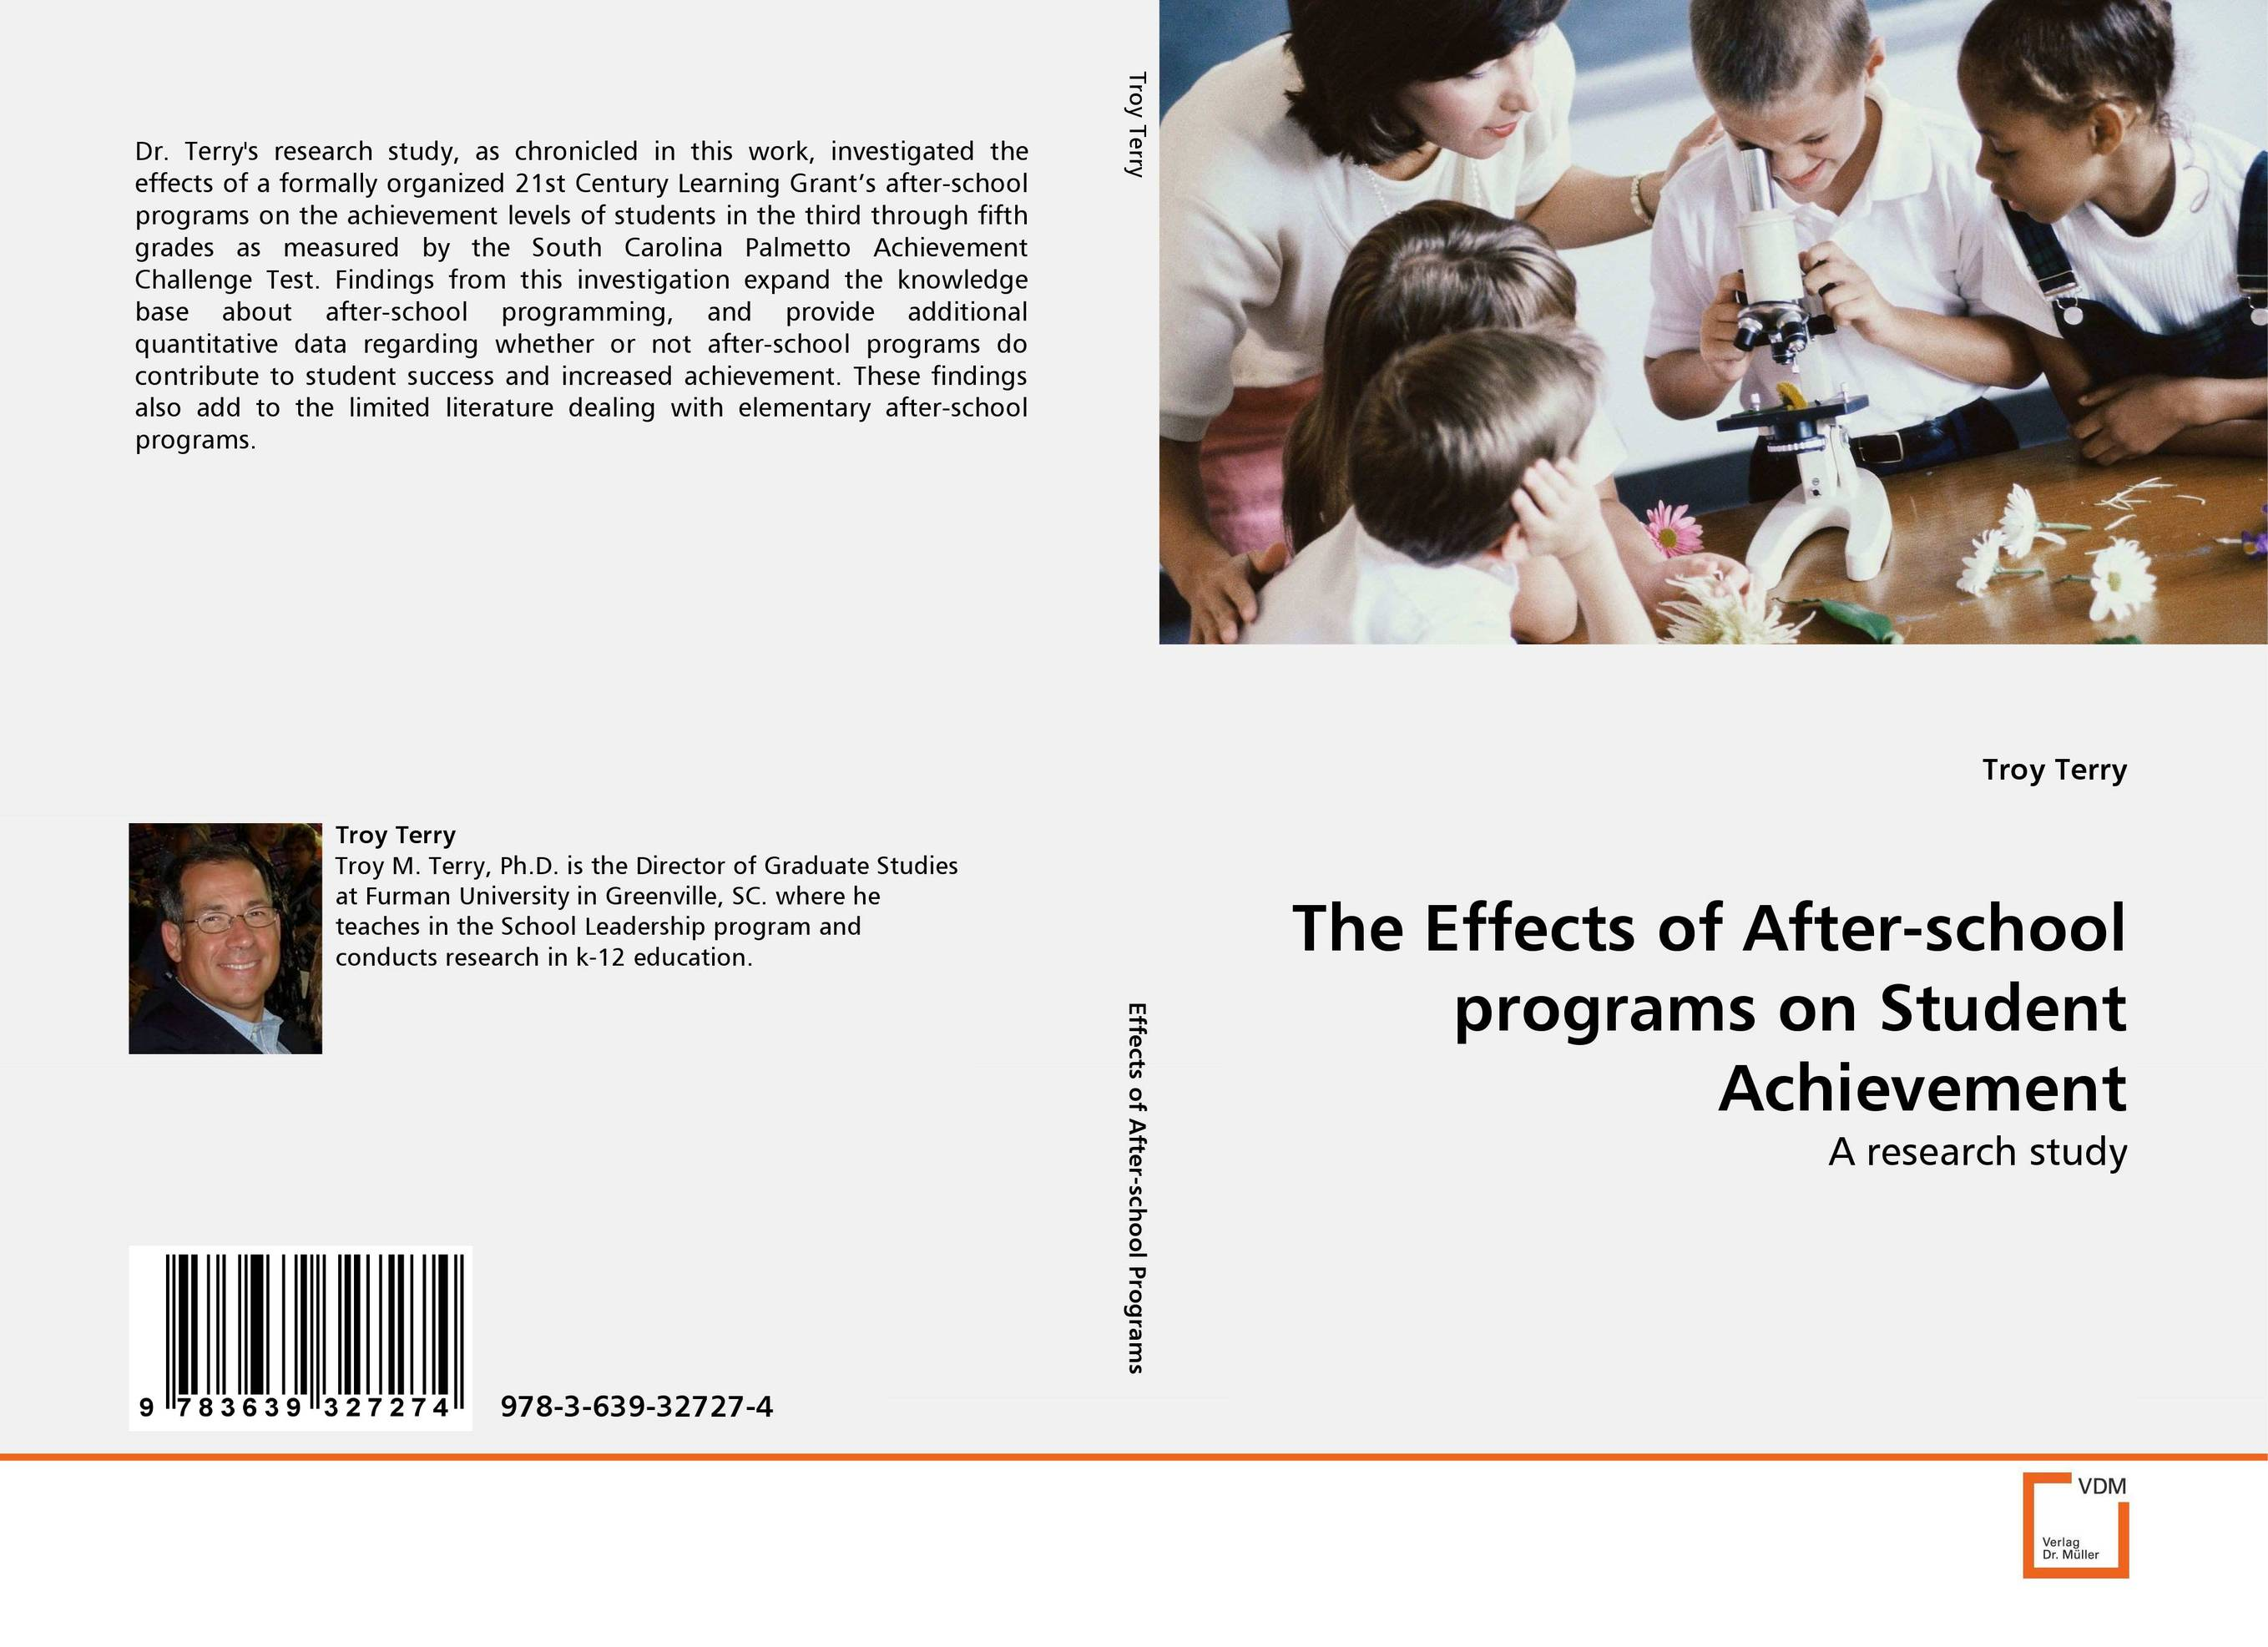 The Effects of After-school programs on Student Achievement